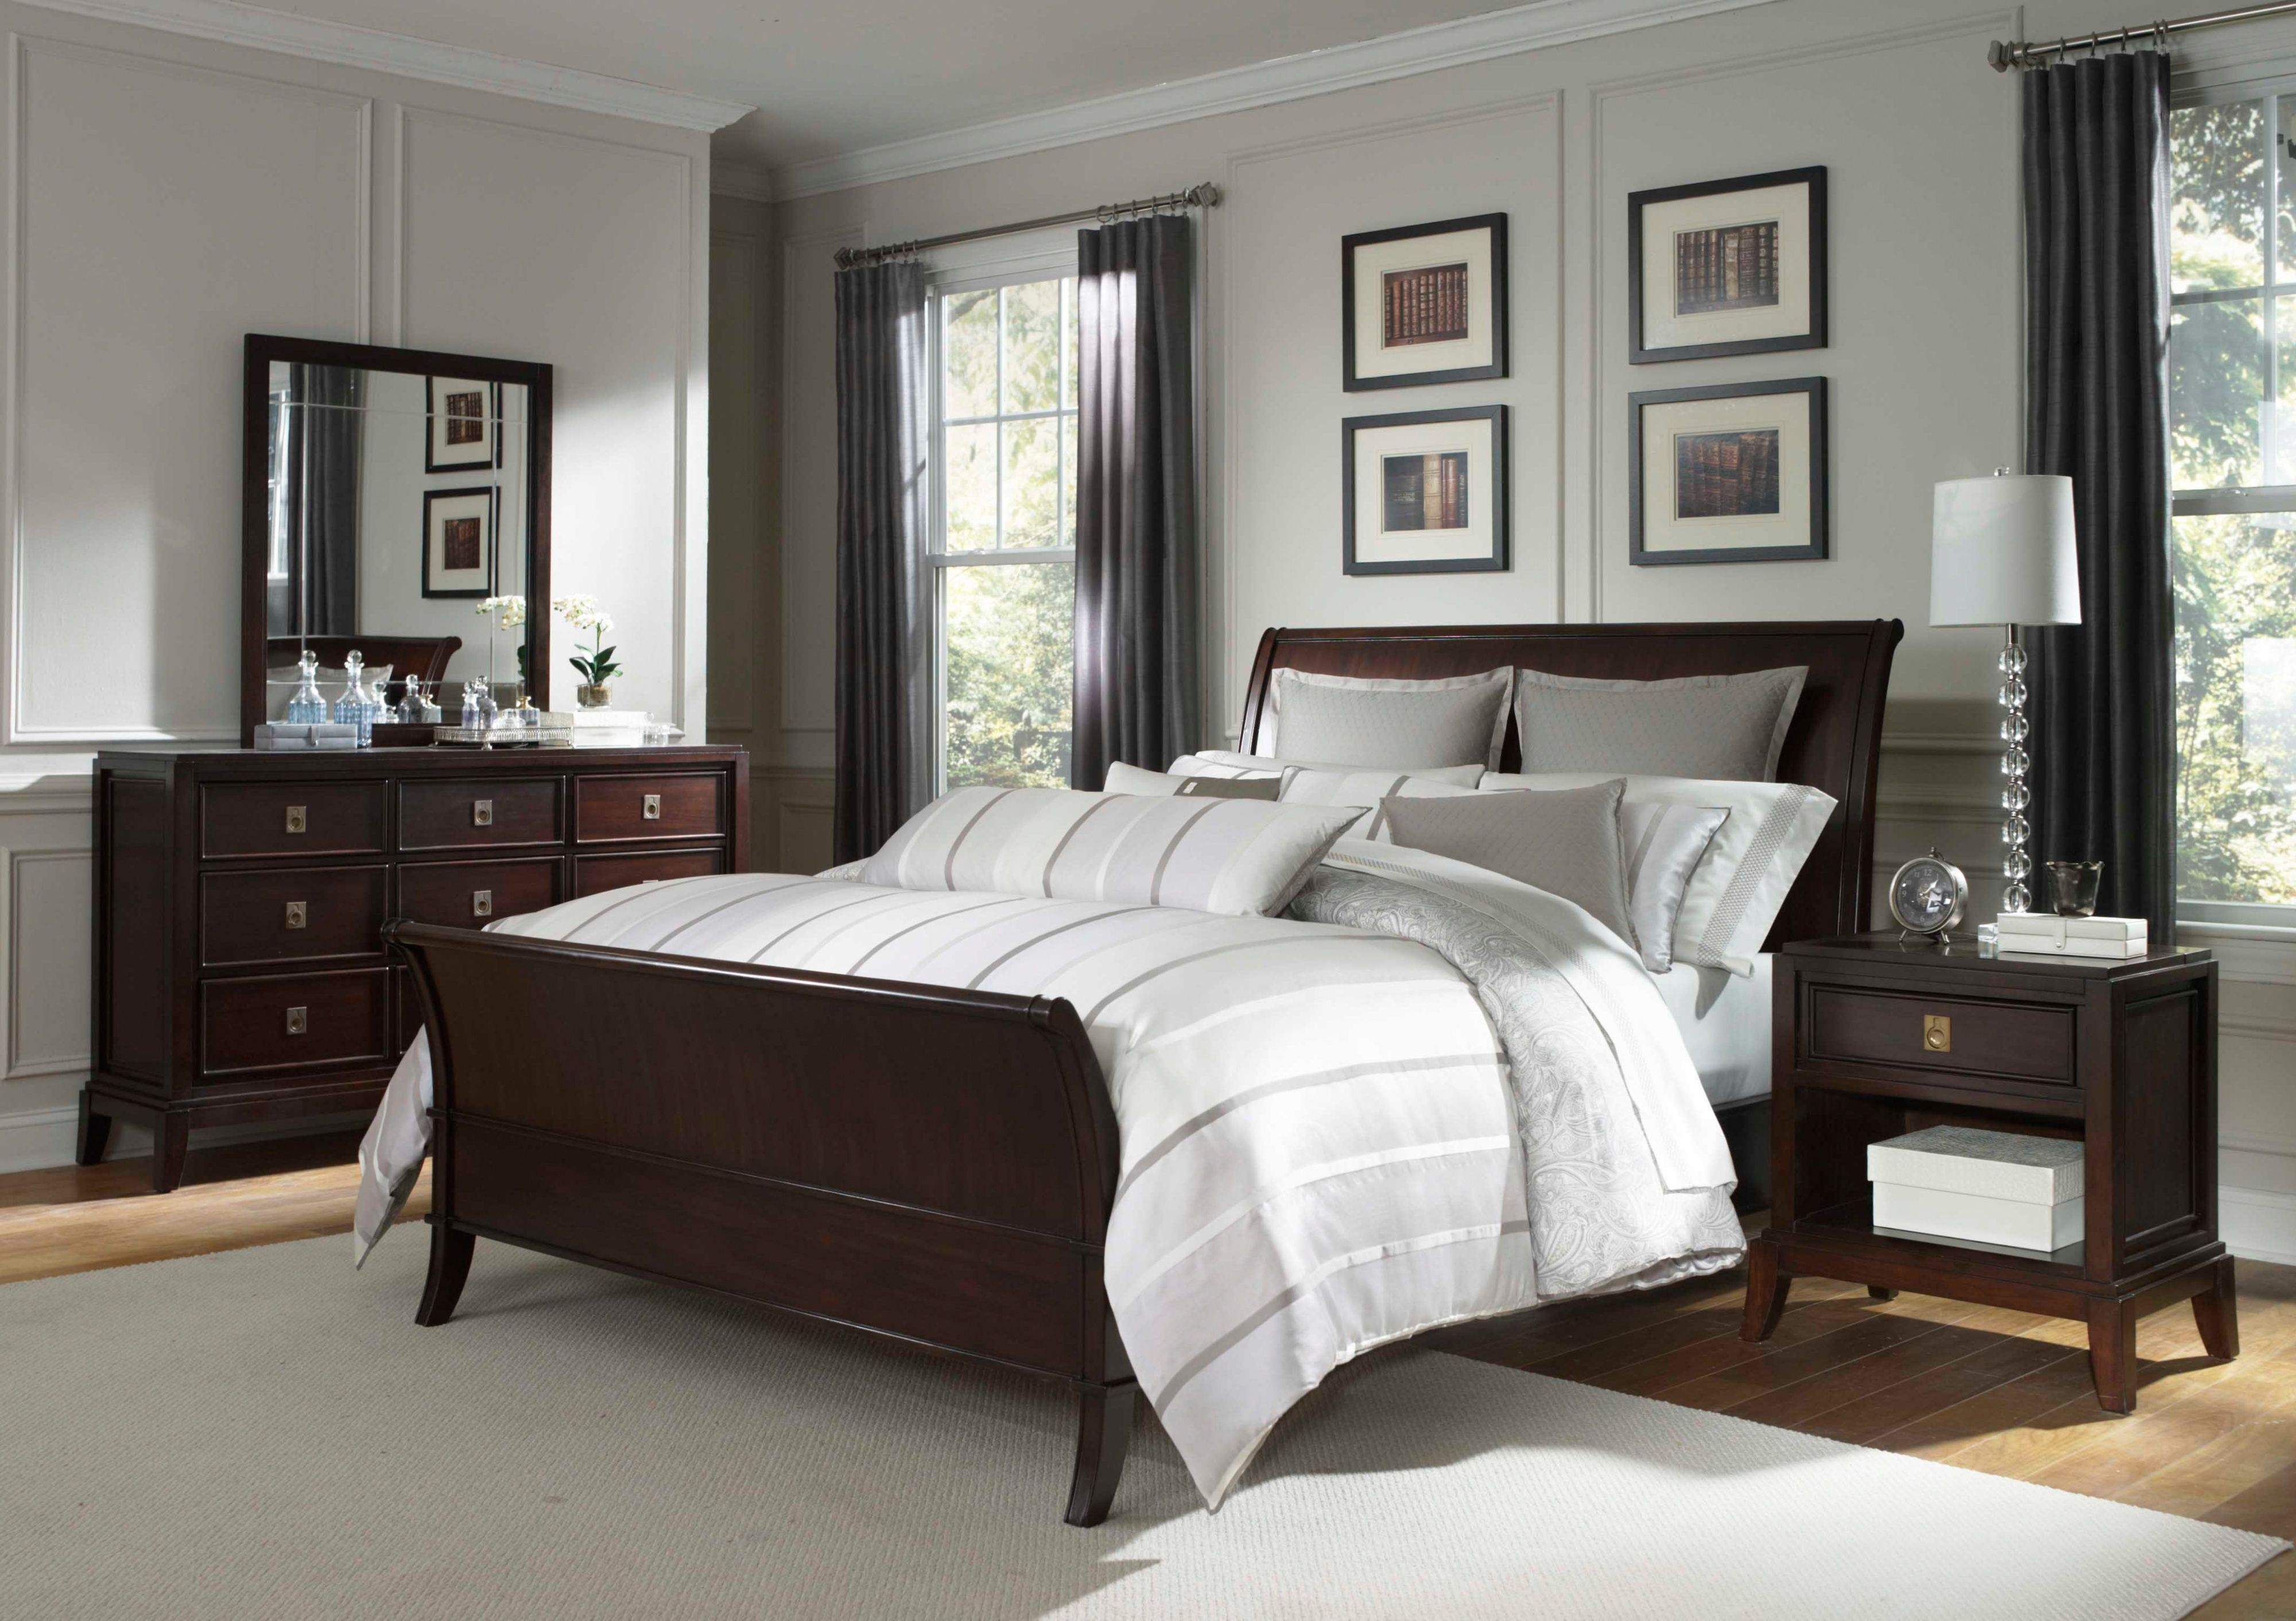 30 Inspiration Picture Of Dark Bedroom Furniture Dark Bedroom